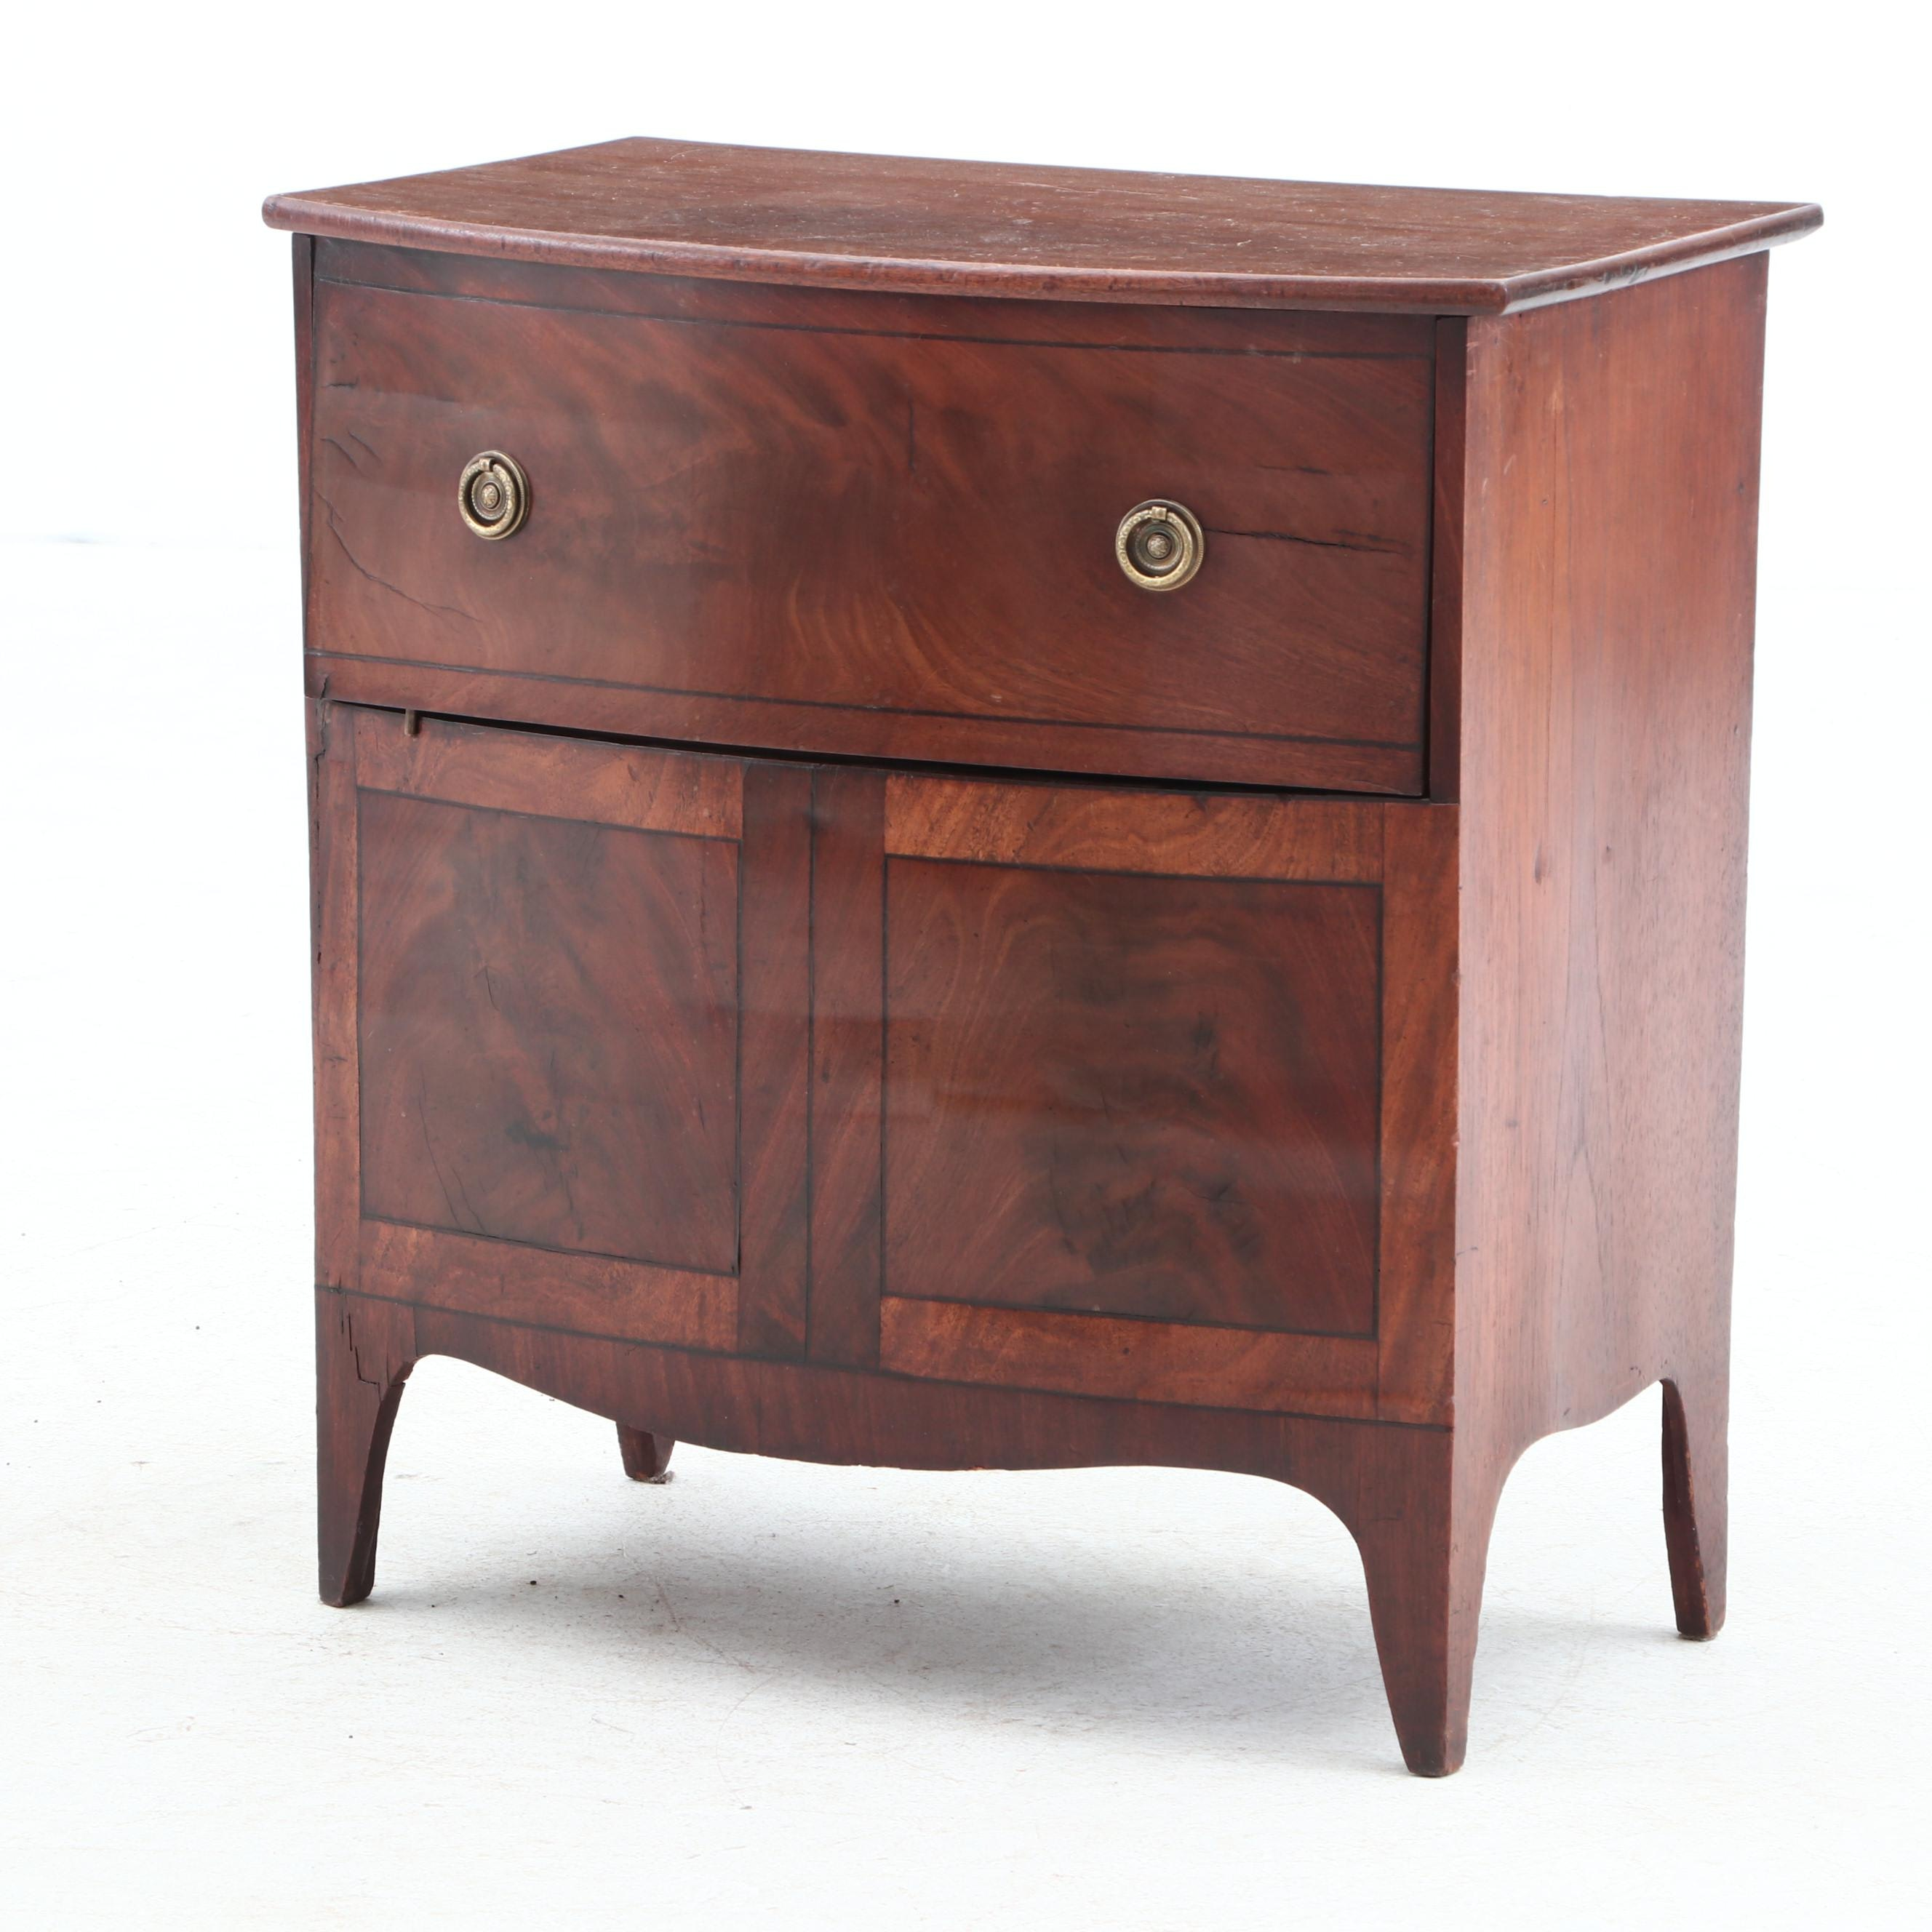 Antique Flame Mahogany Veneer Commode, Ca. Mid 19th Century